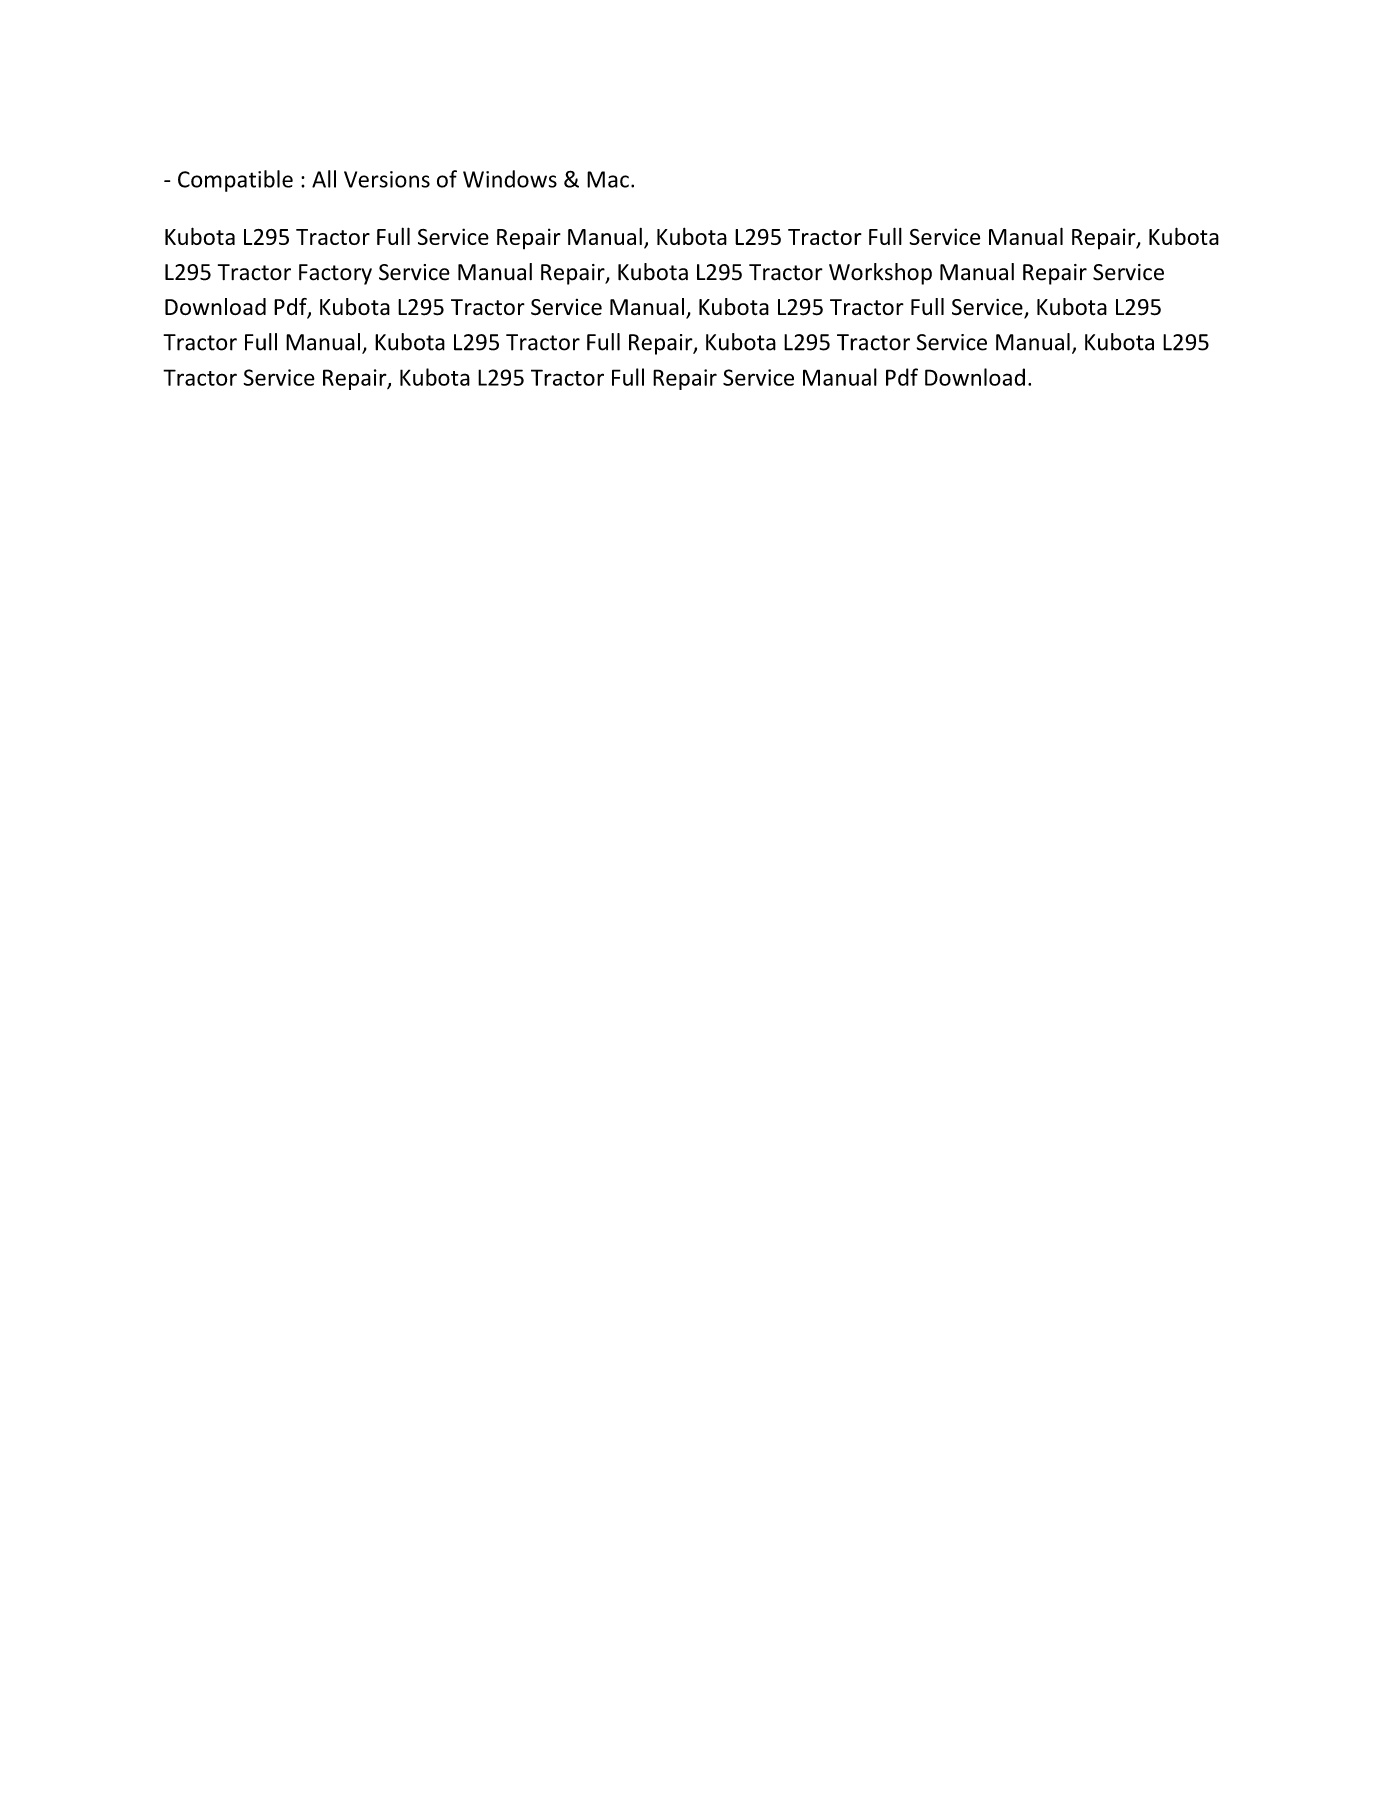 Kubota L295 Tractor FULL SERVICE MANUAL REPAIR Pages 1 - 2 - Text Version |  AnyFlip